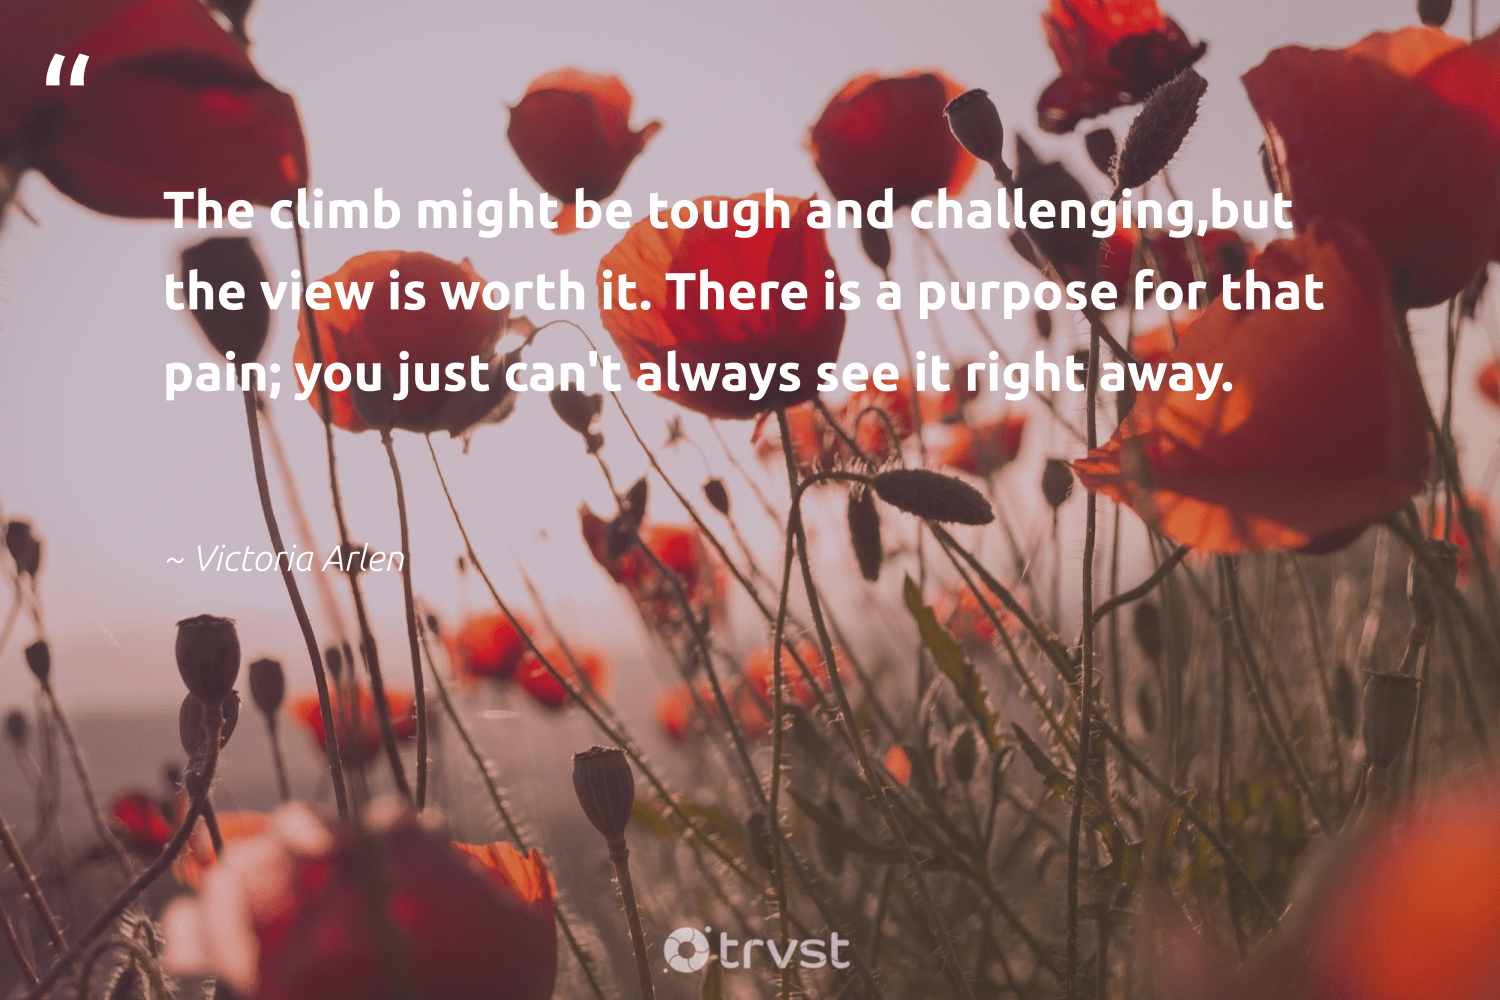 """""""The climb might be tough and challenging,but the view is worth it. There is a purpose for that pain; you just can't always see it right away.""""  - Victoria Arlen #trvst #quotes #purpose #findingpupose #mindset #changemakers #dosomething #findpurpose #nevergiveup #health #ecoconscious #purposedriven"""